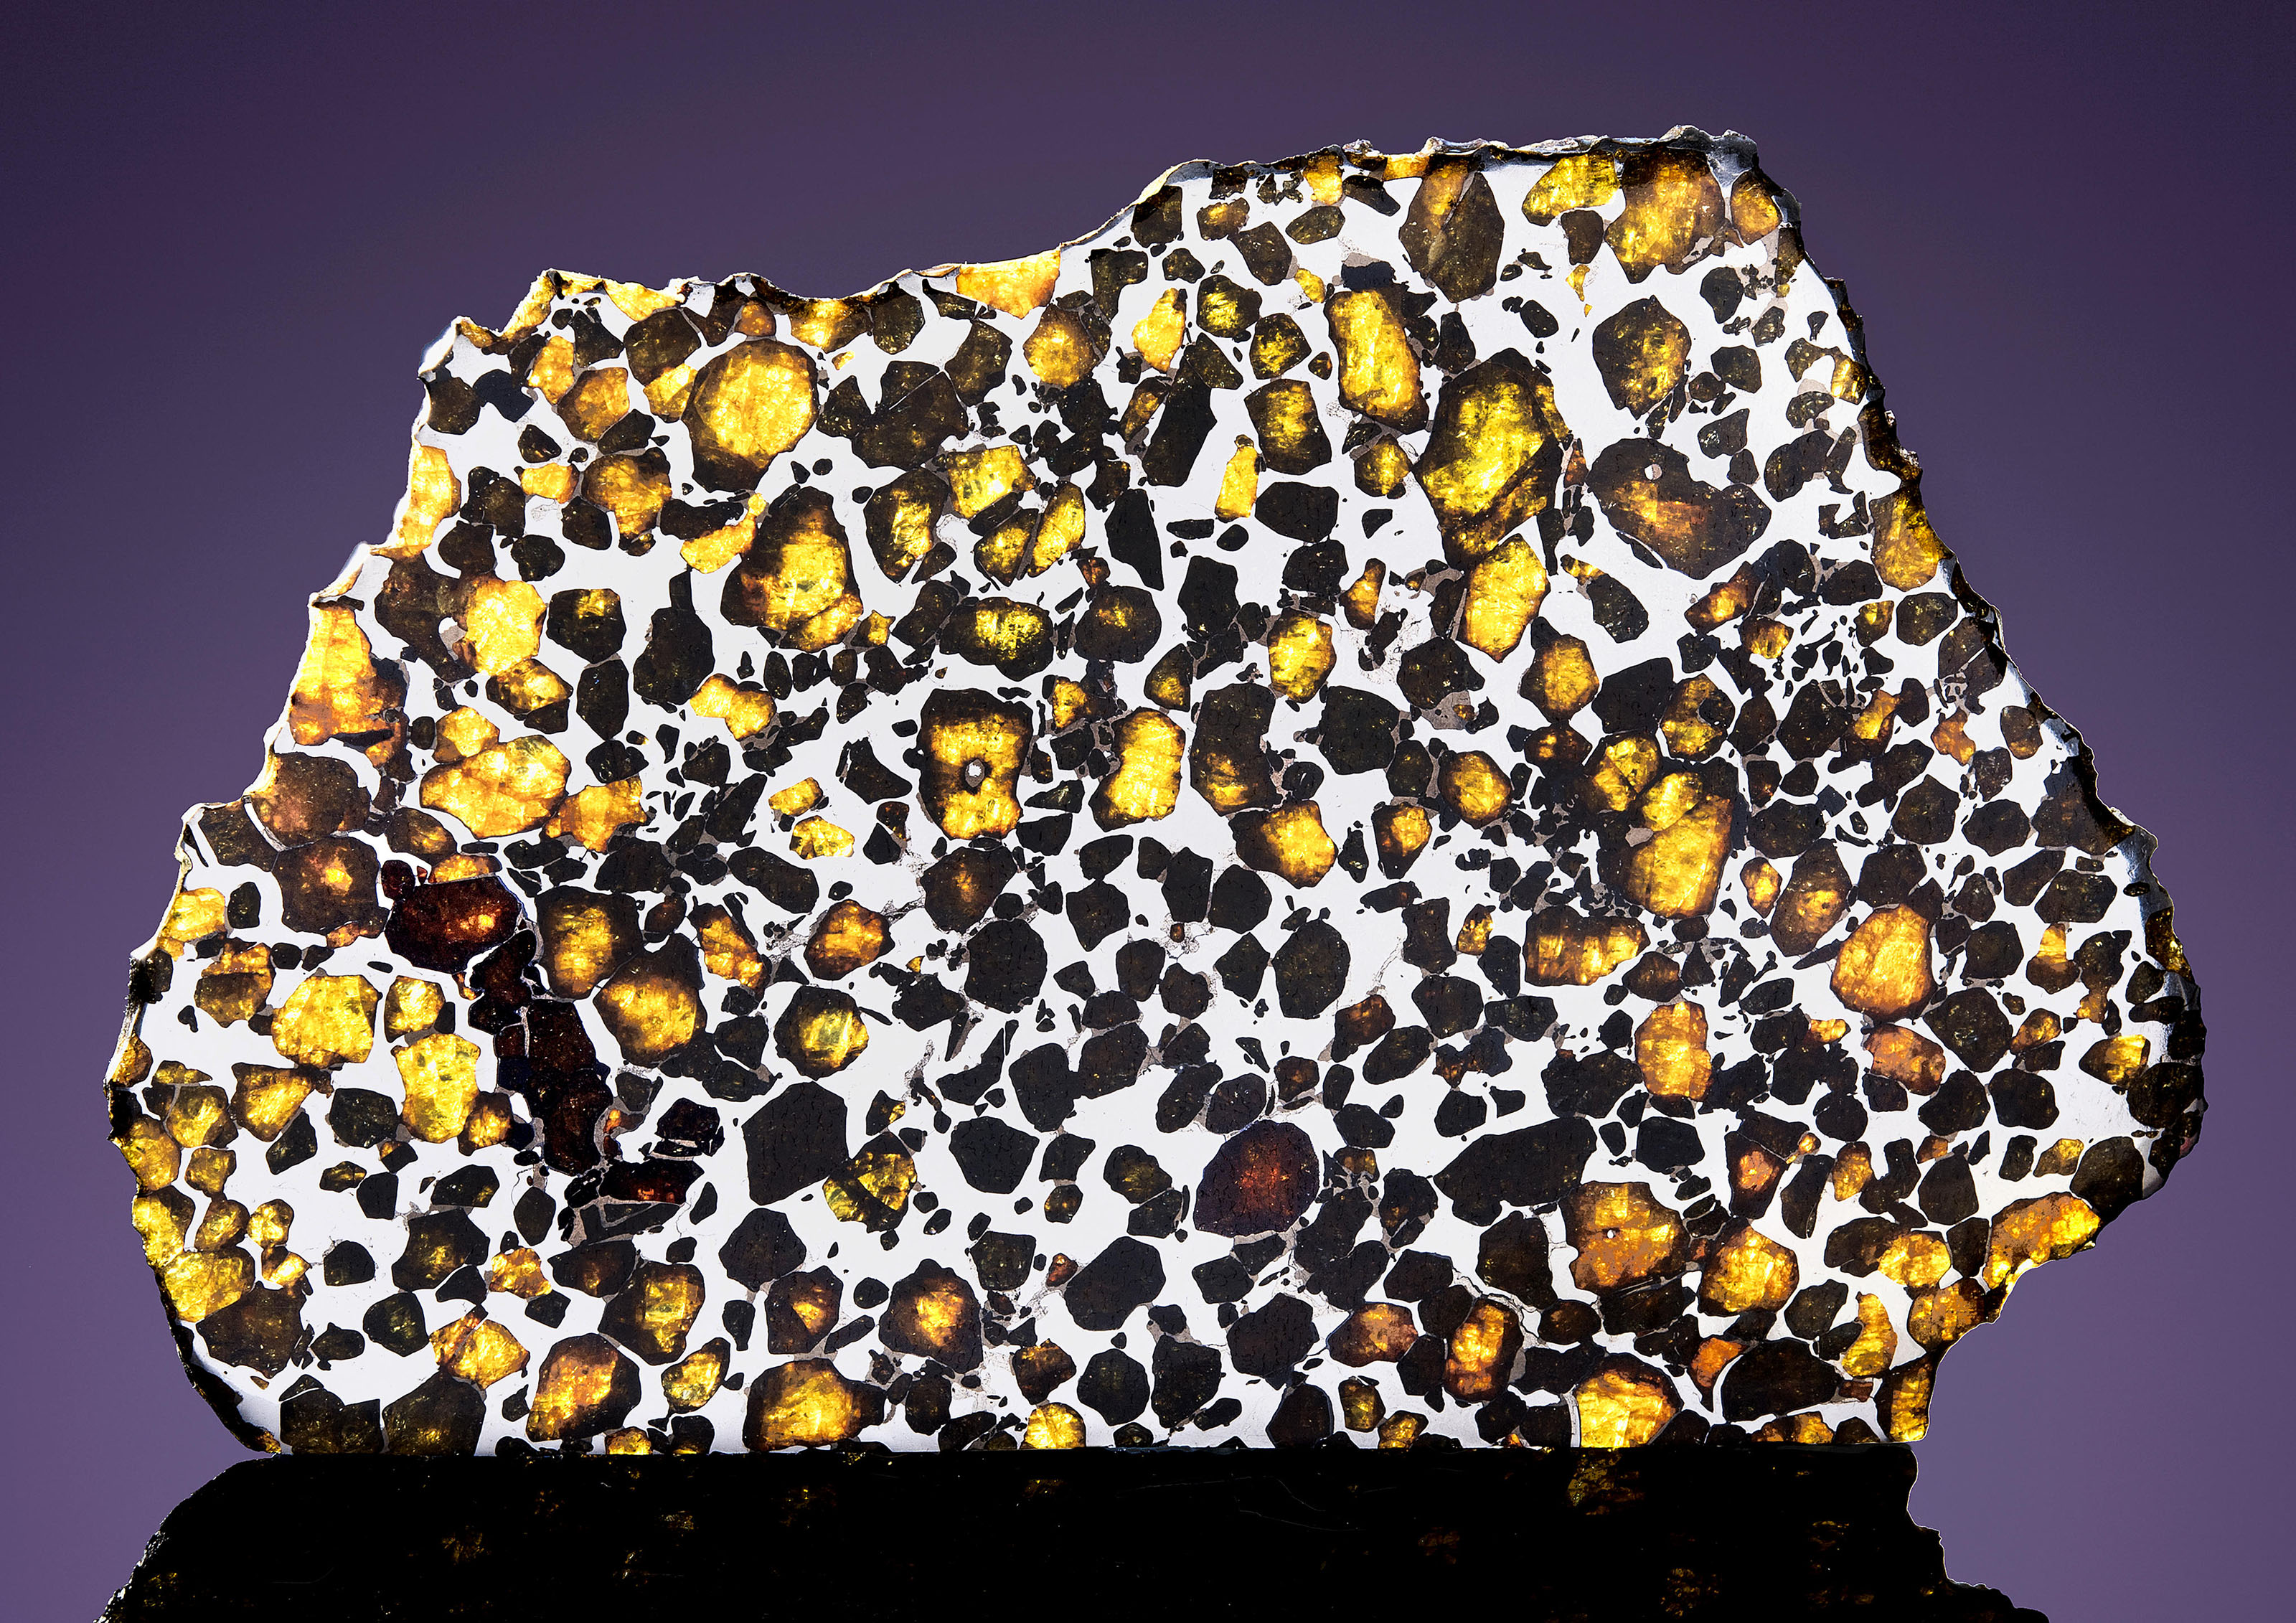 IMILAC PALLASITE PARTIAL SLICE — THE MOST BEAUTIFUL EXTRATERRESTRIAL SUBSTANCE KNOWN